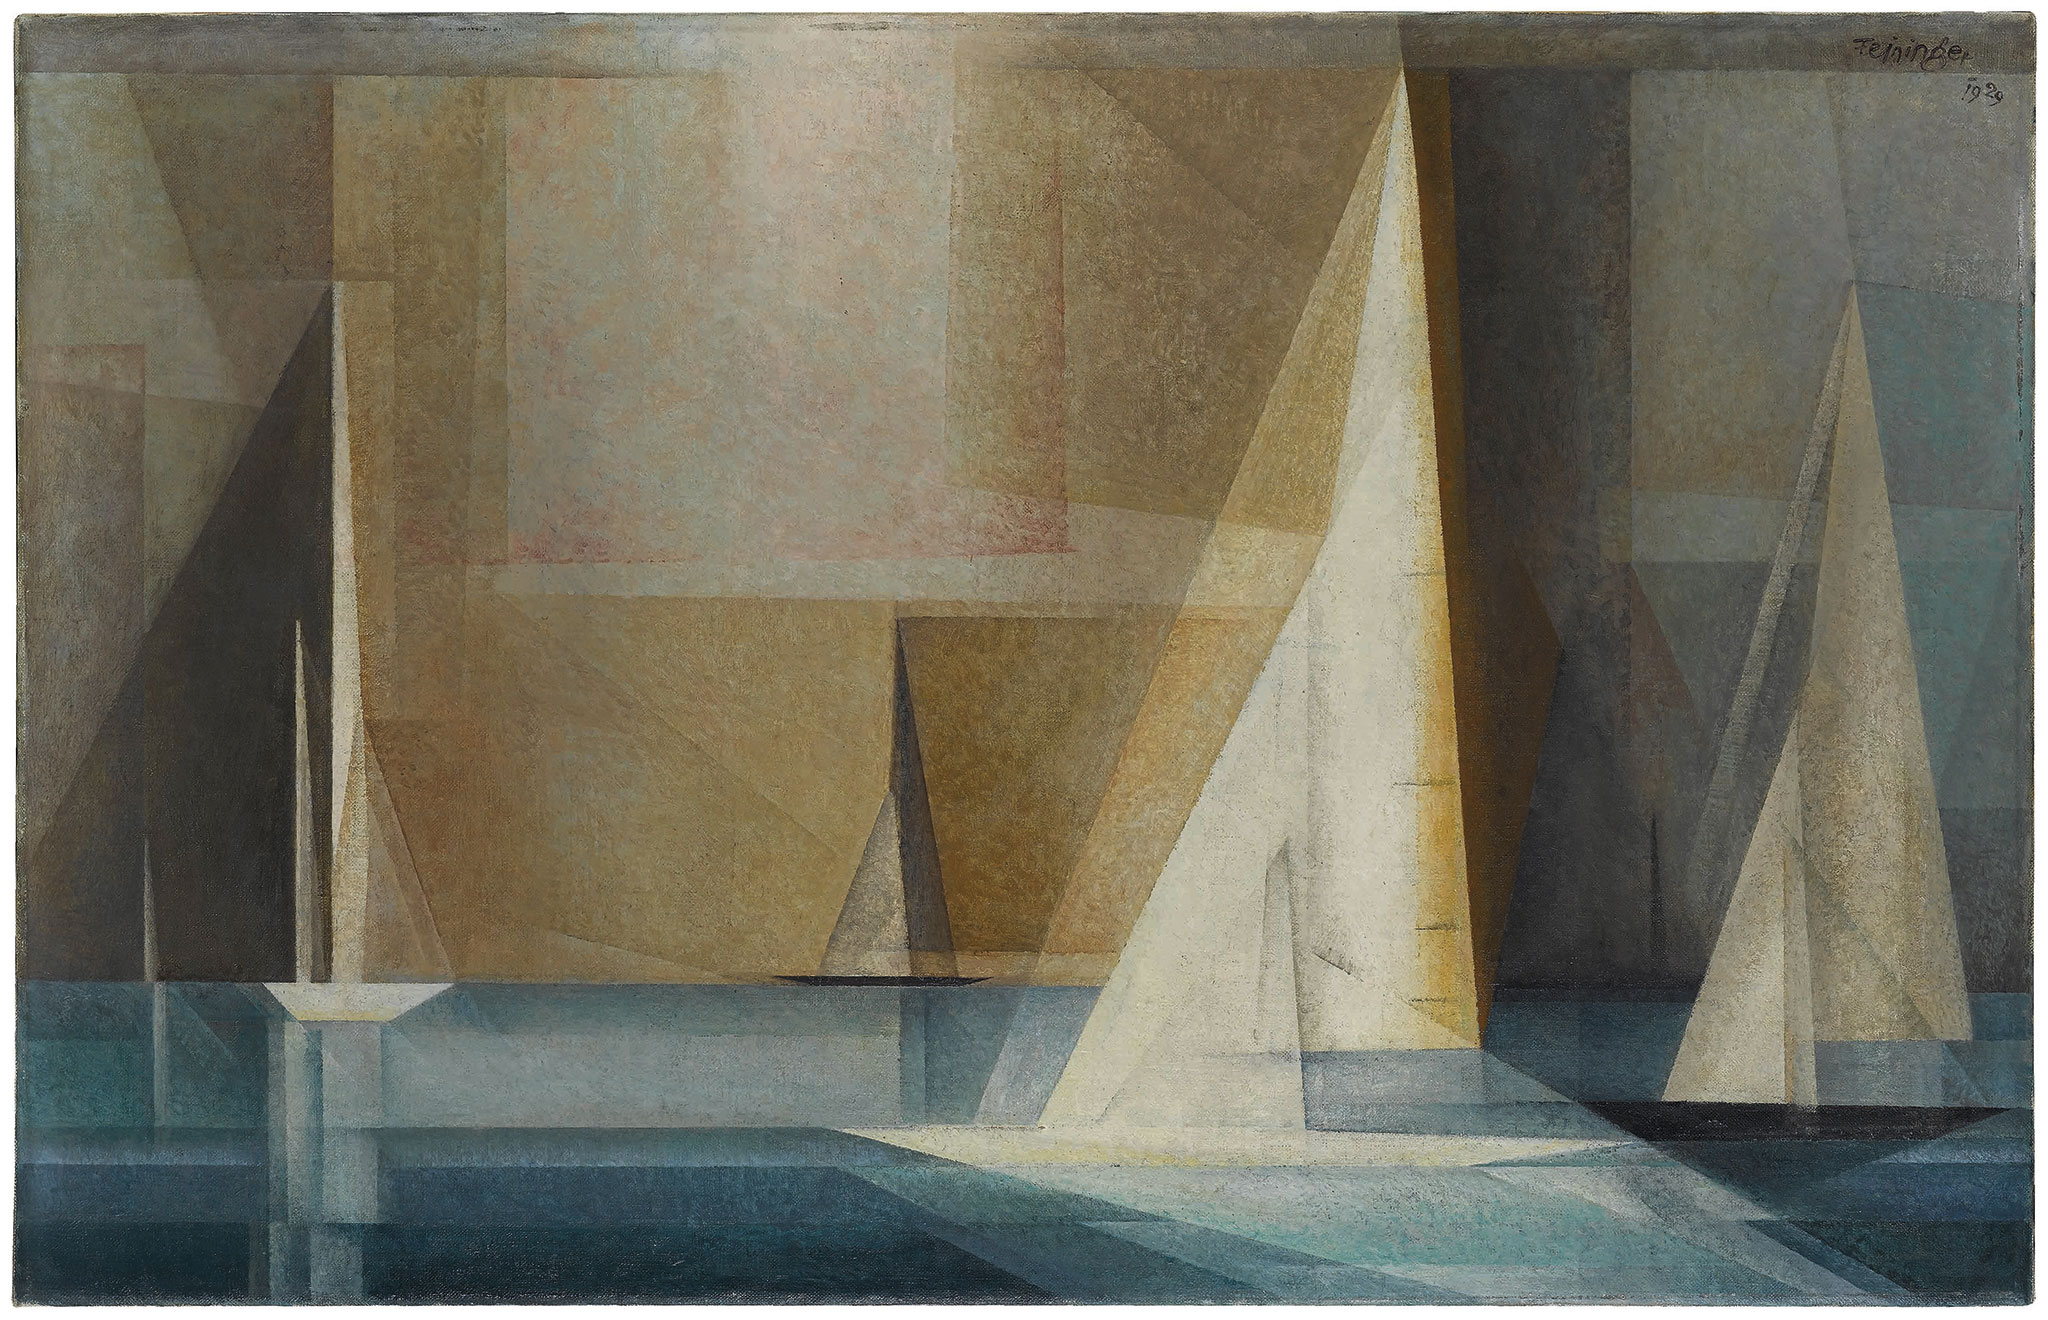 Design Studio Stuttgart Lyonel Feininger (1871-1956). Bauhaus, Drawing And